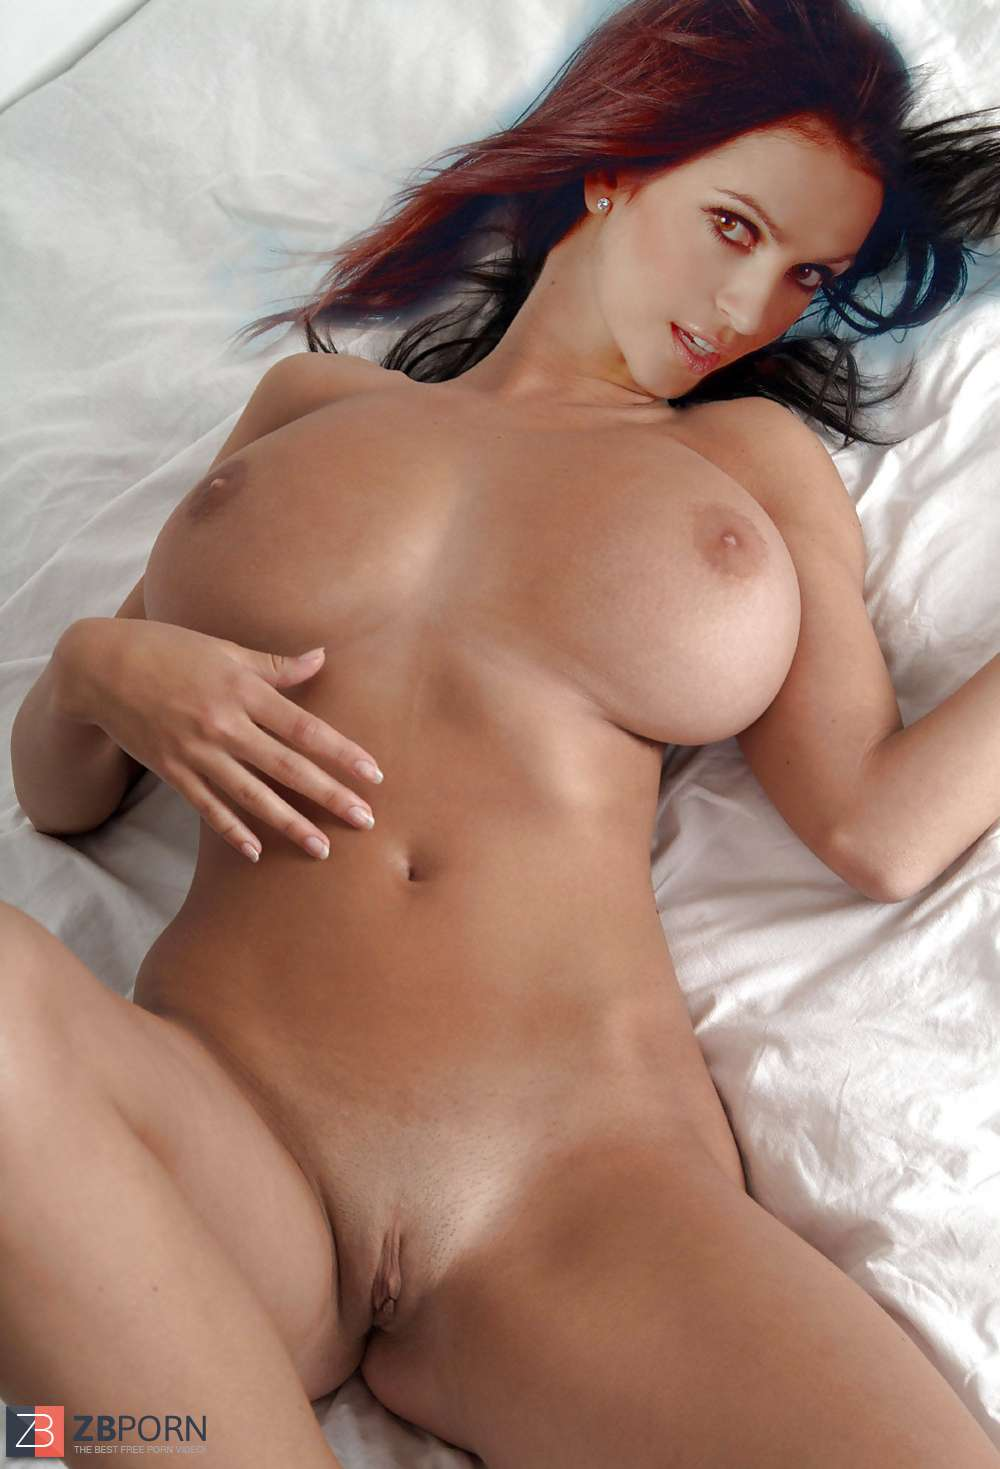 denise milani nude breasts